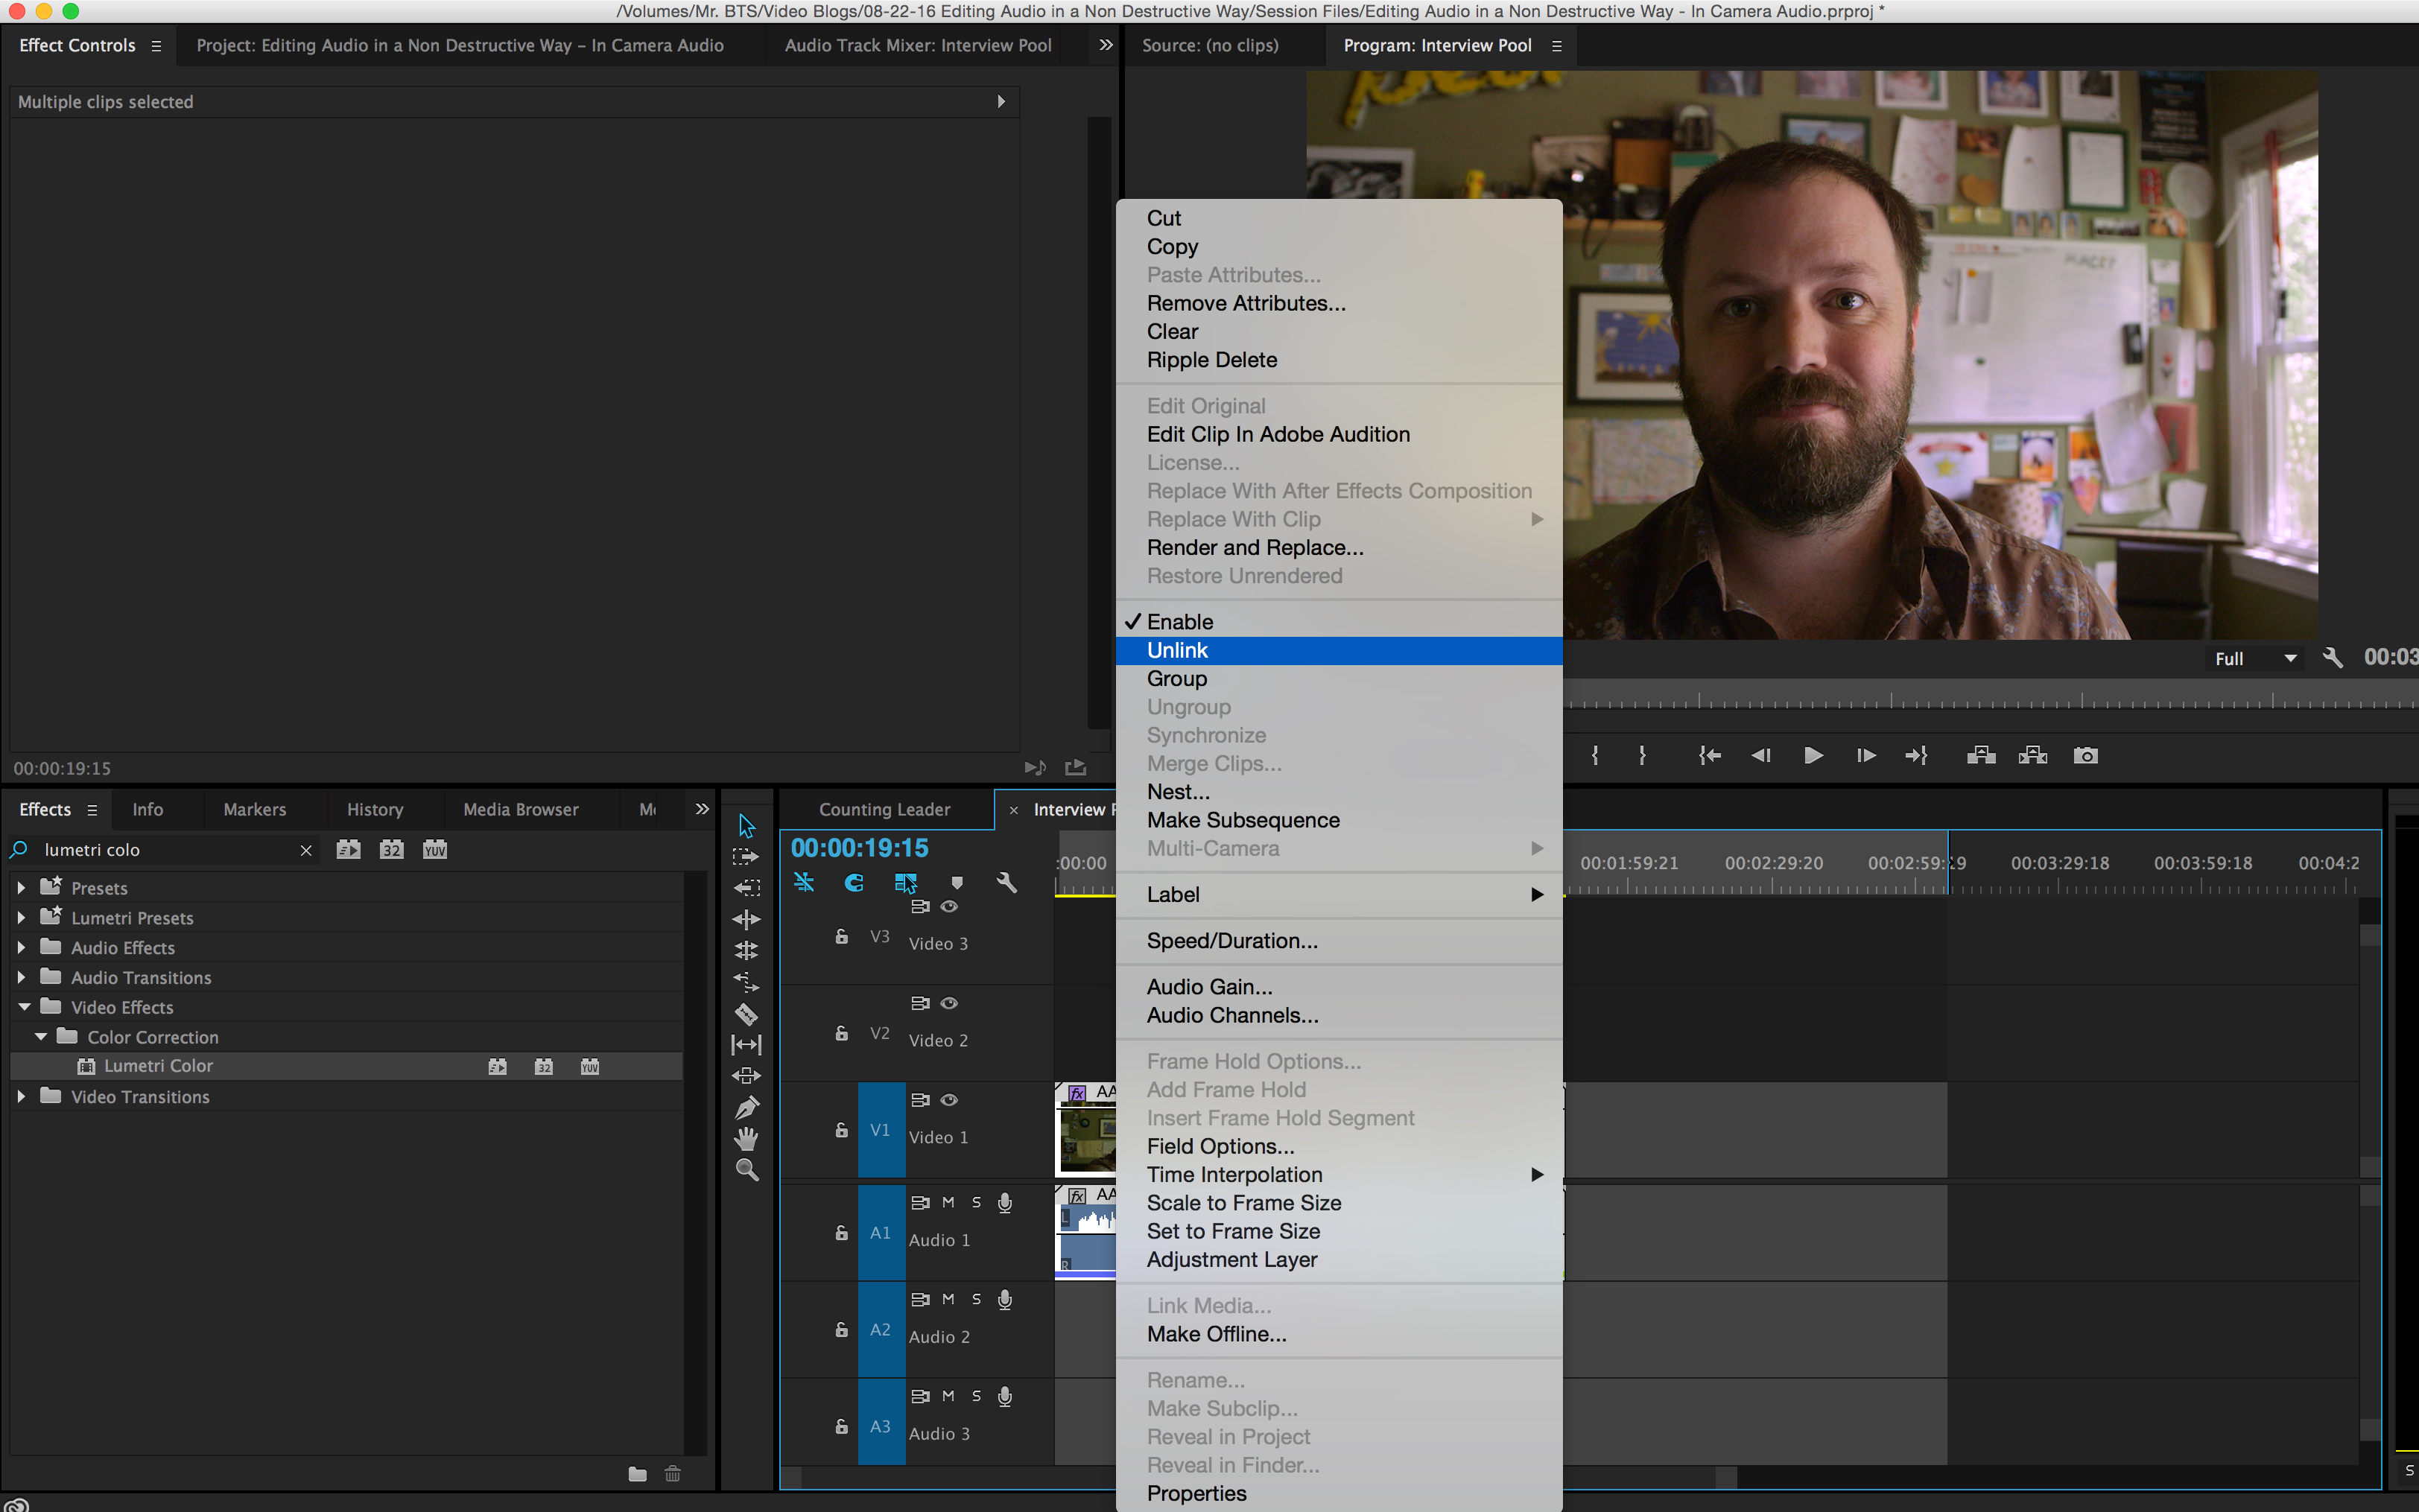 How to Simultaneously Edit Multiple Internal Camera Audio Files: Unlink Audio